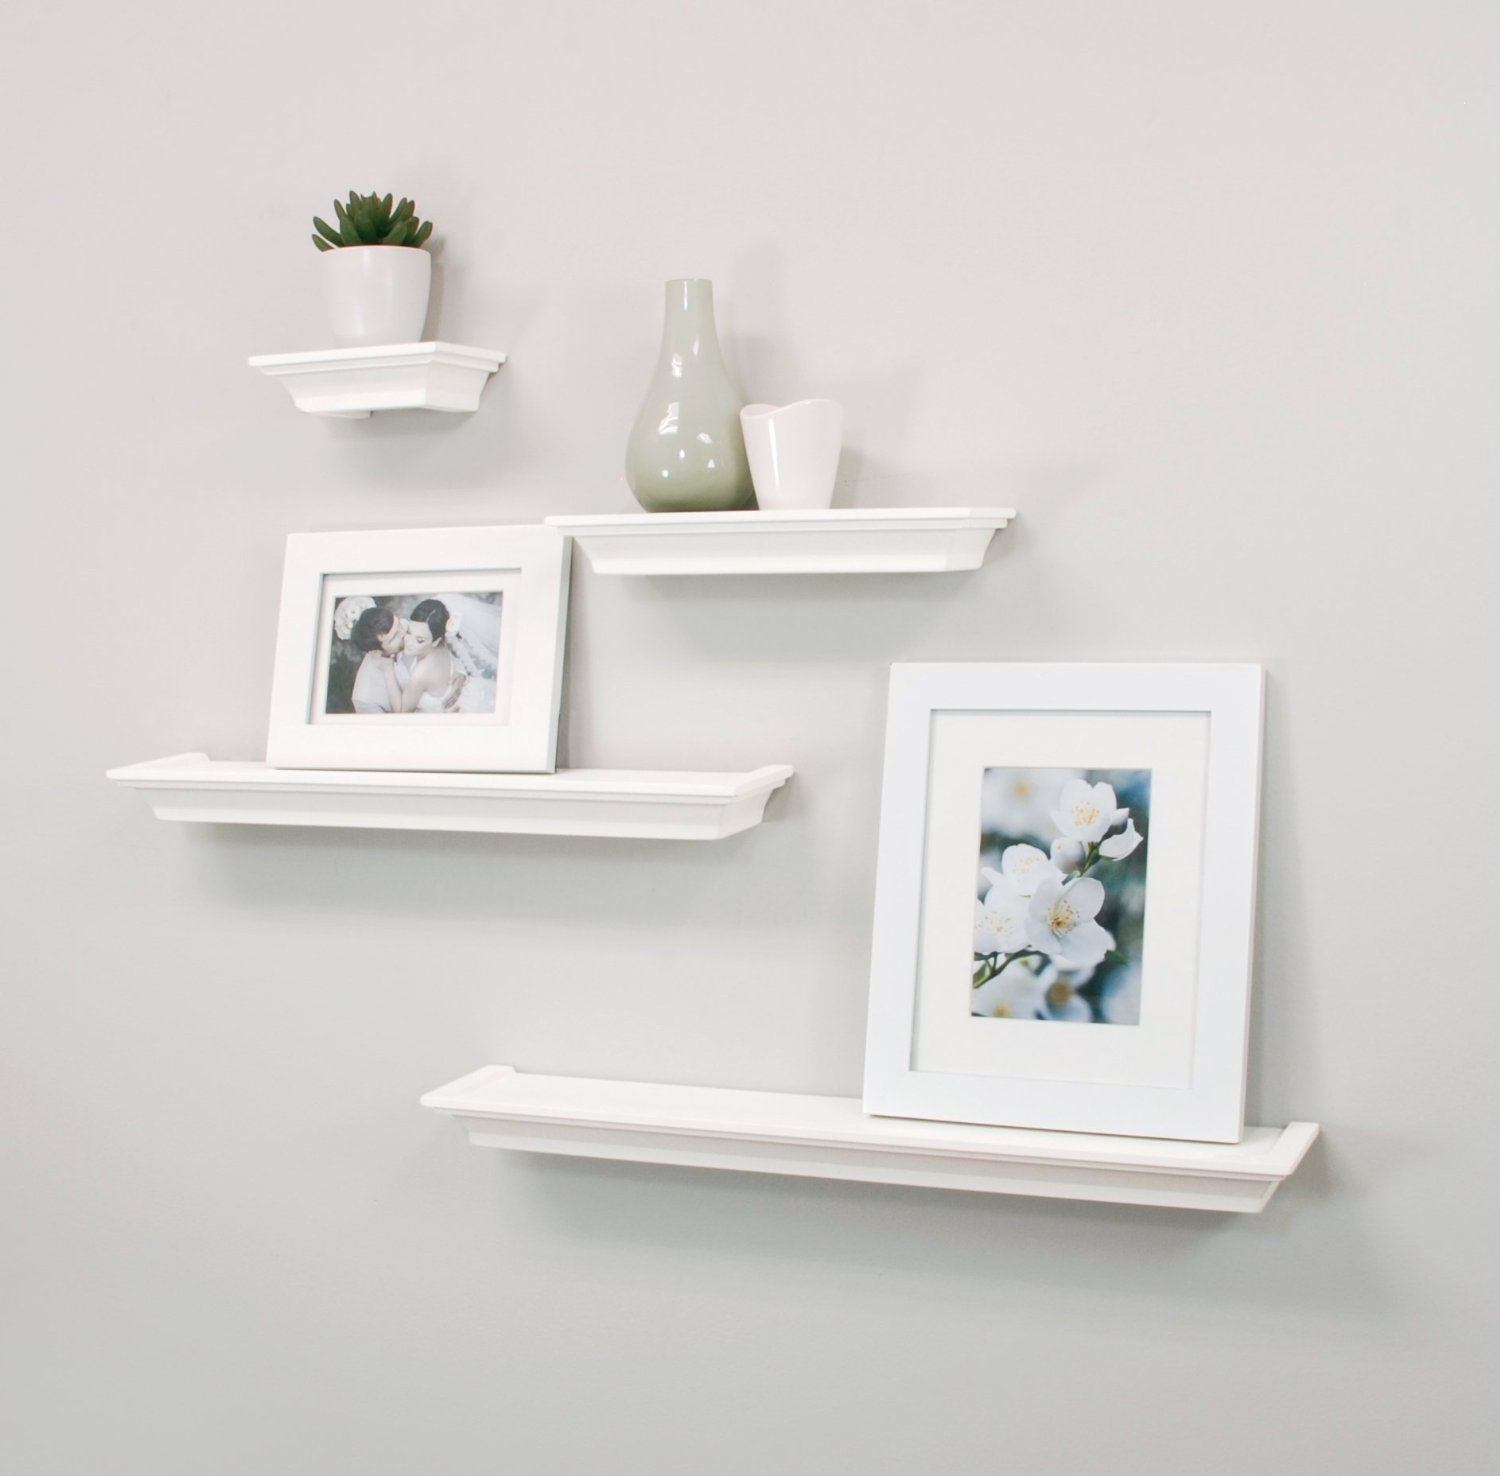 Net Clic Set Of 4 Multilength Floating Ledge Shelves White